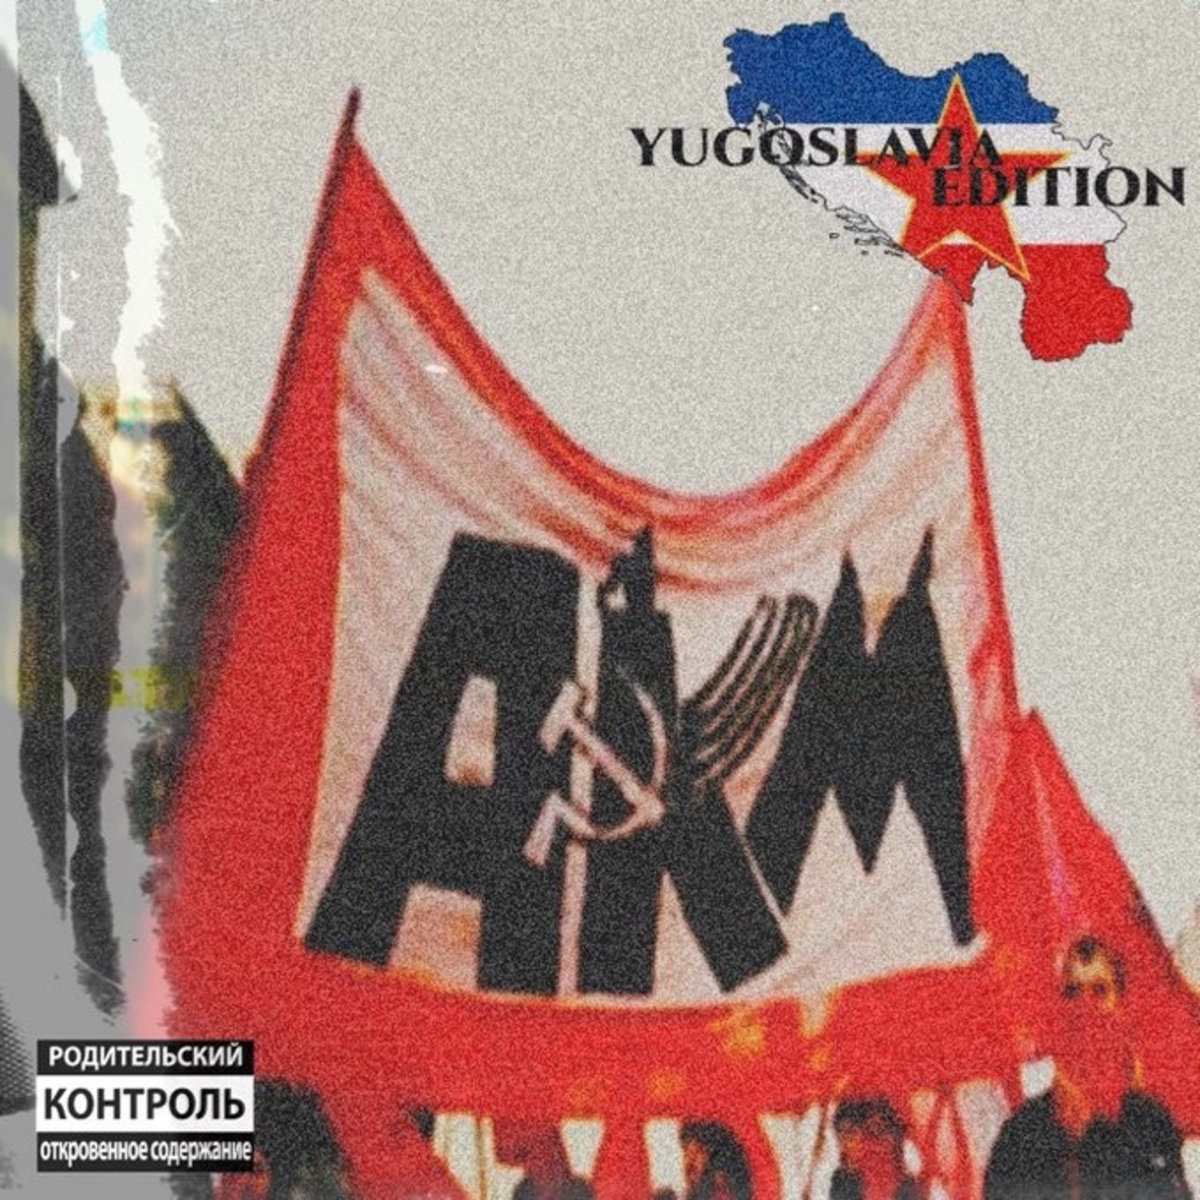 Bloodblixing - AKM (YUGOSLAVIA EDITION) EP